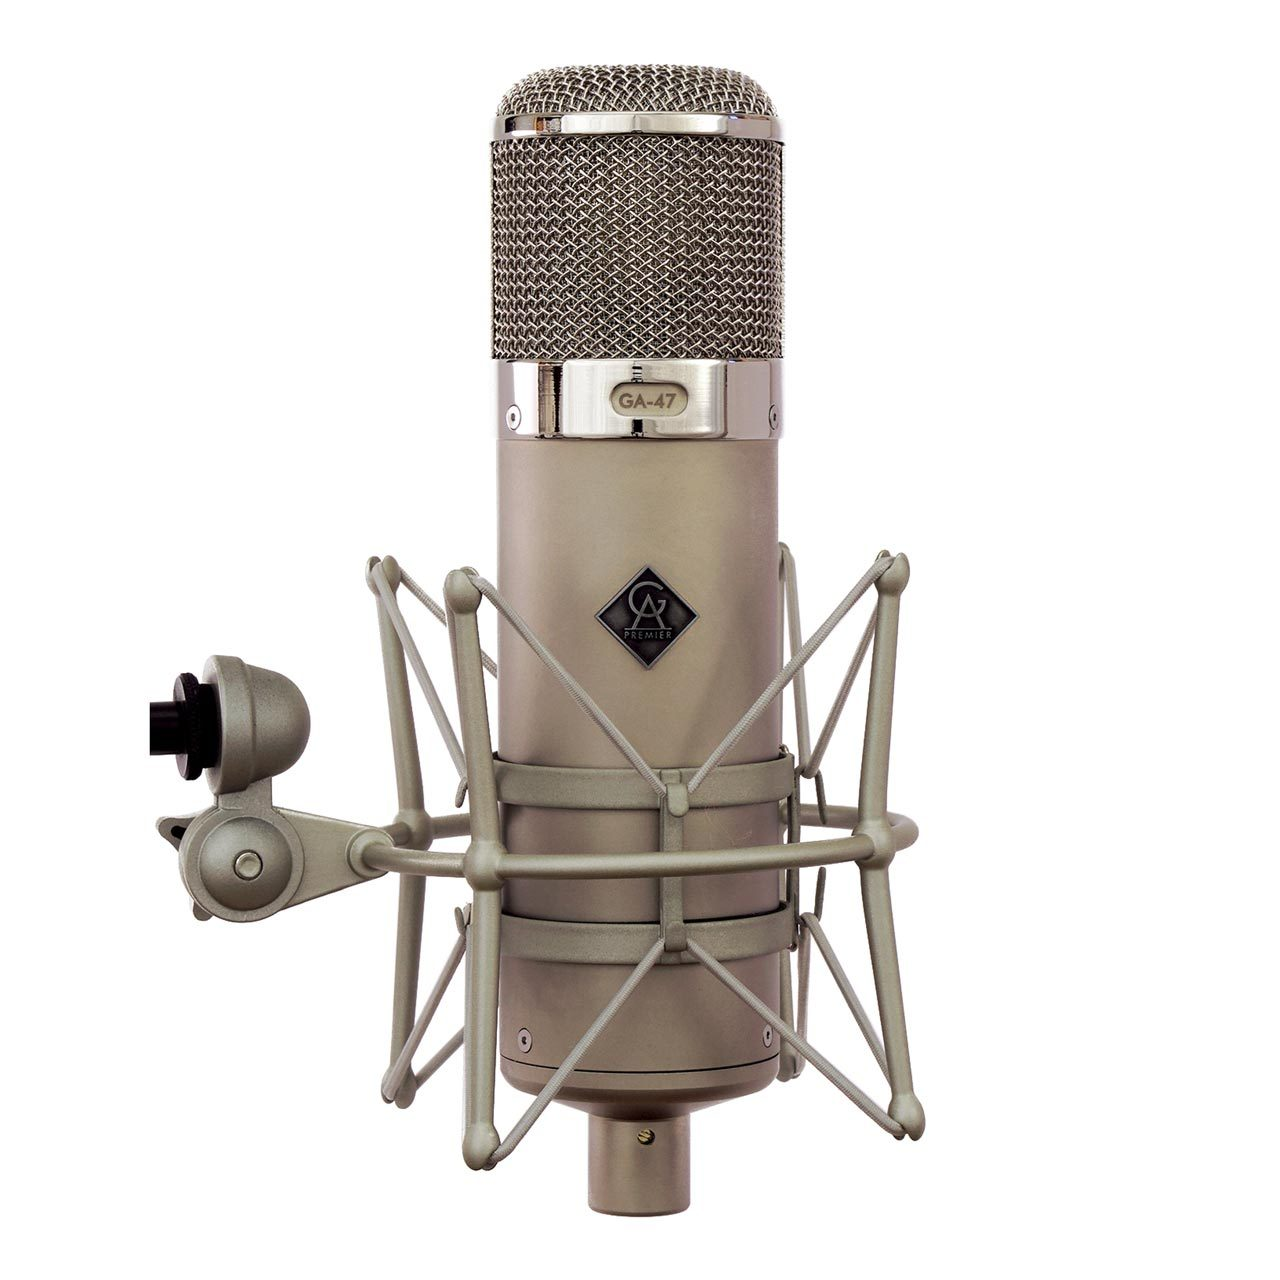 Golden Age Premium GA-47 Large Diaphragm Tube Condenser Microphone